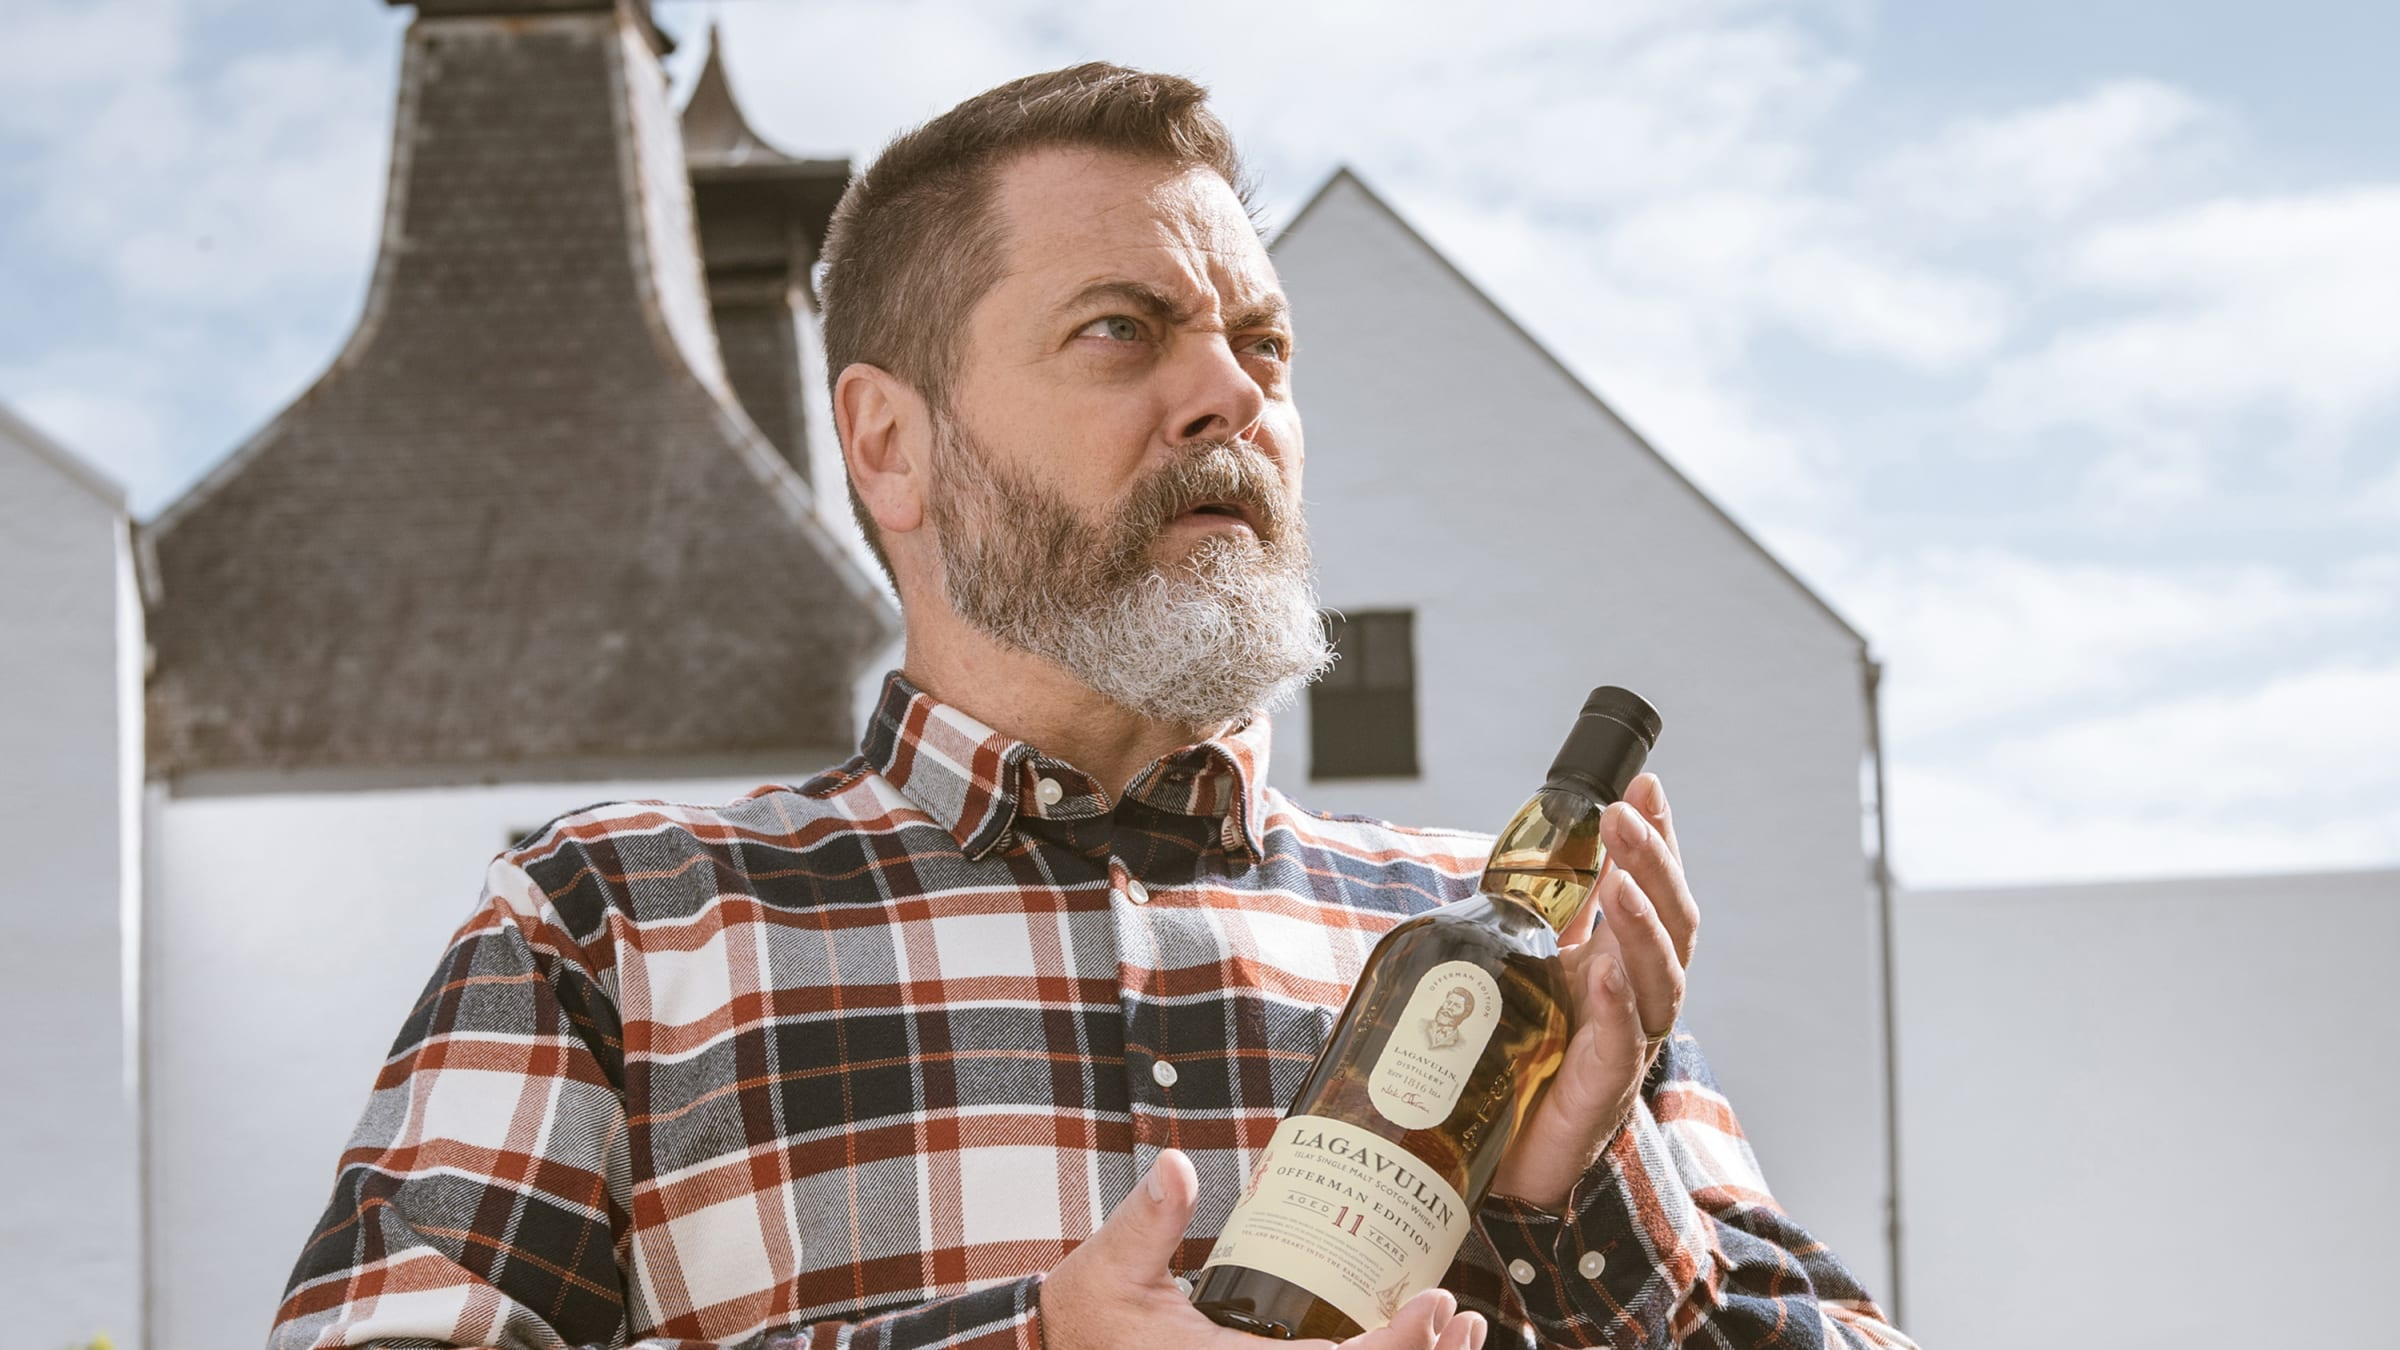 Drink Like Ron Swanson: Meet the Lagavulin Offerman Edition Single Malt Scotch Whisky